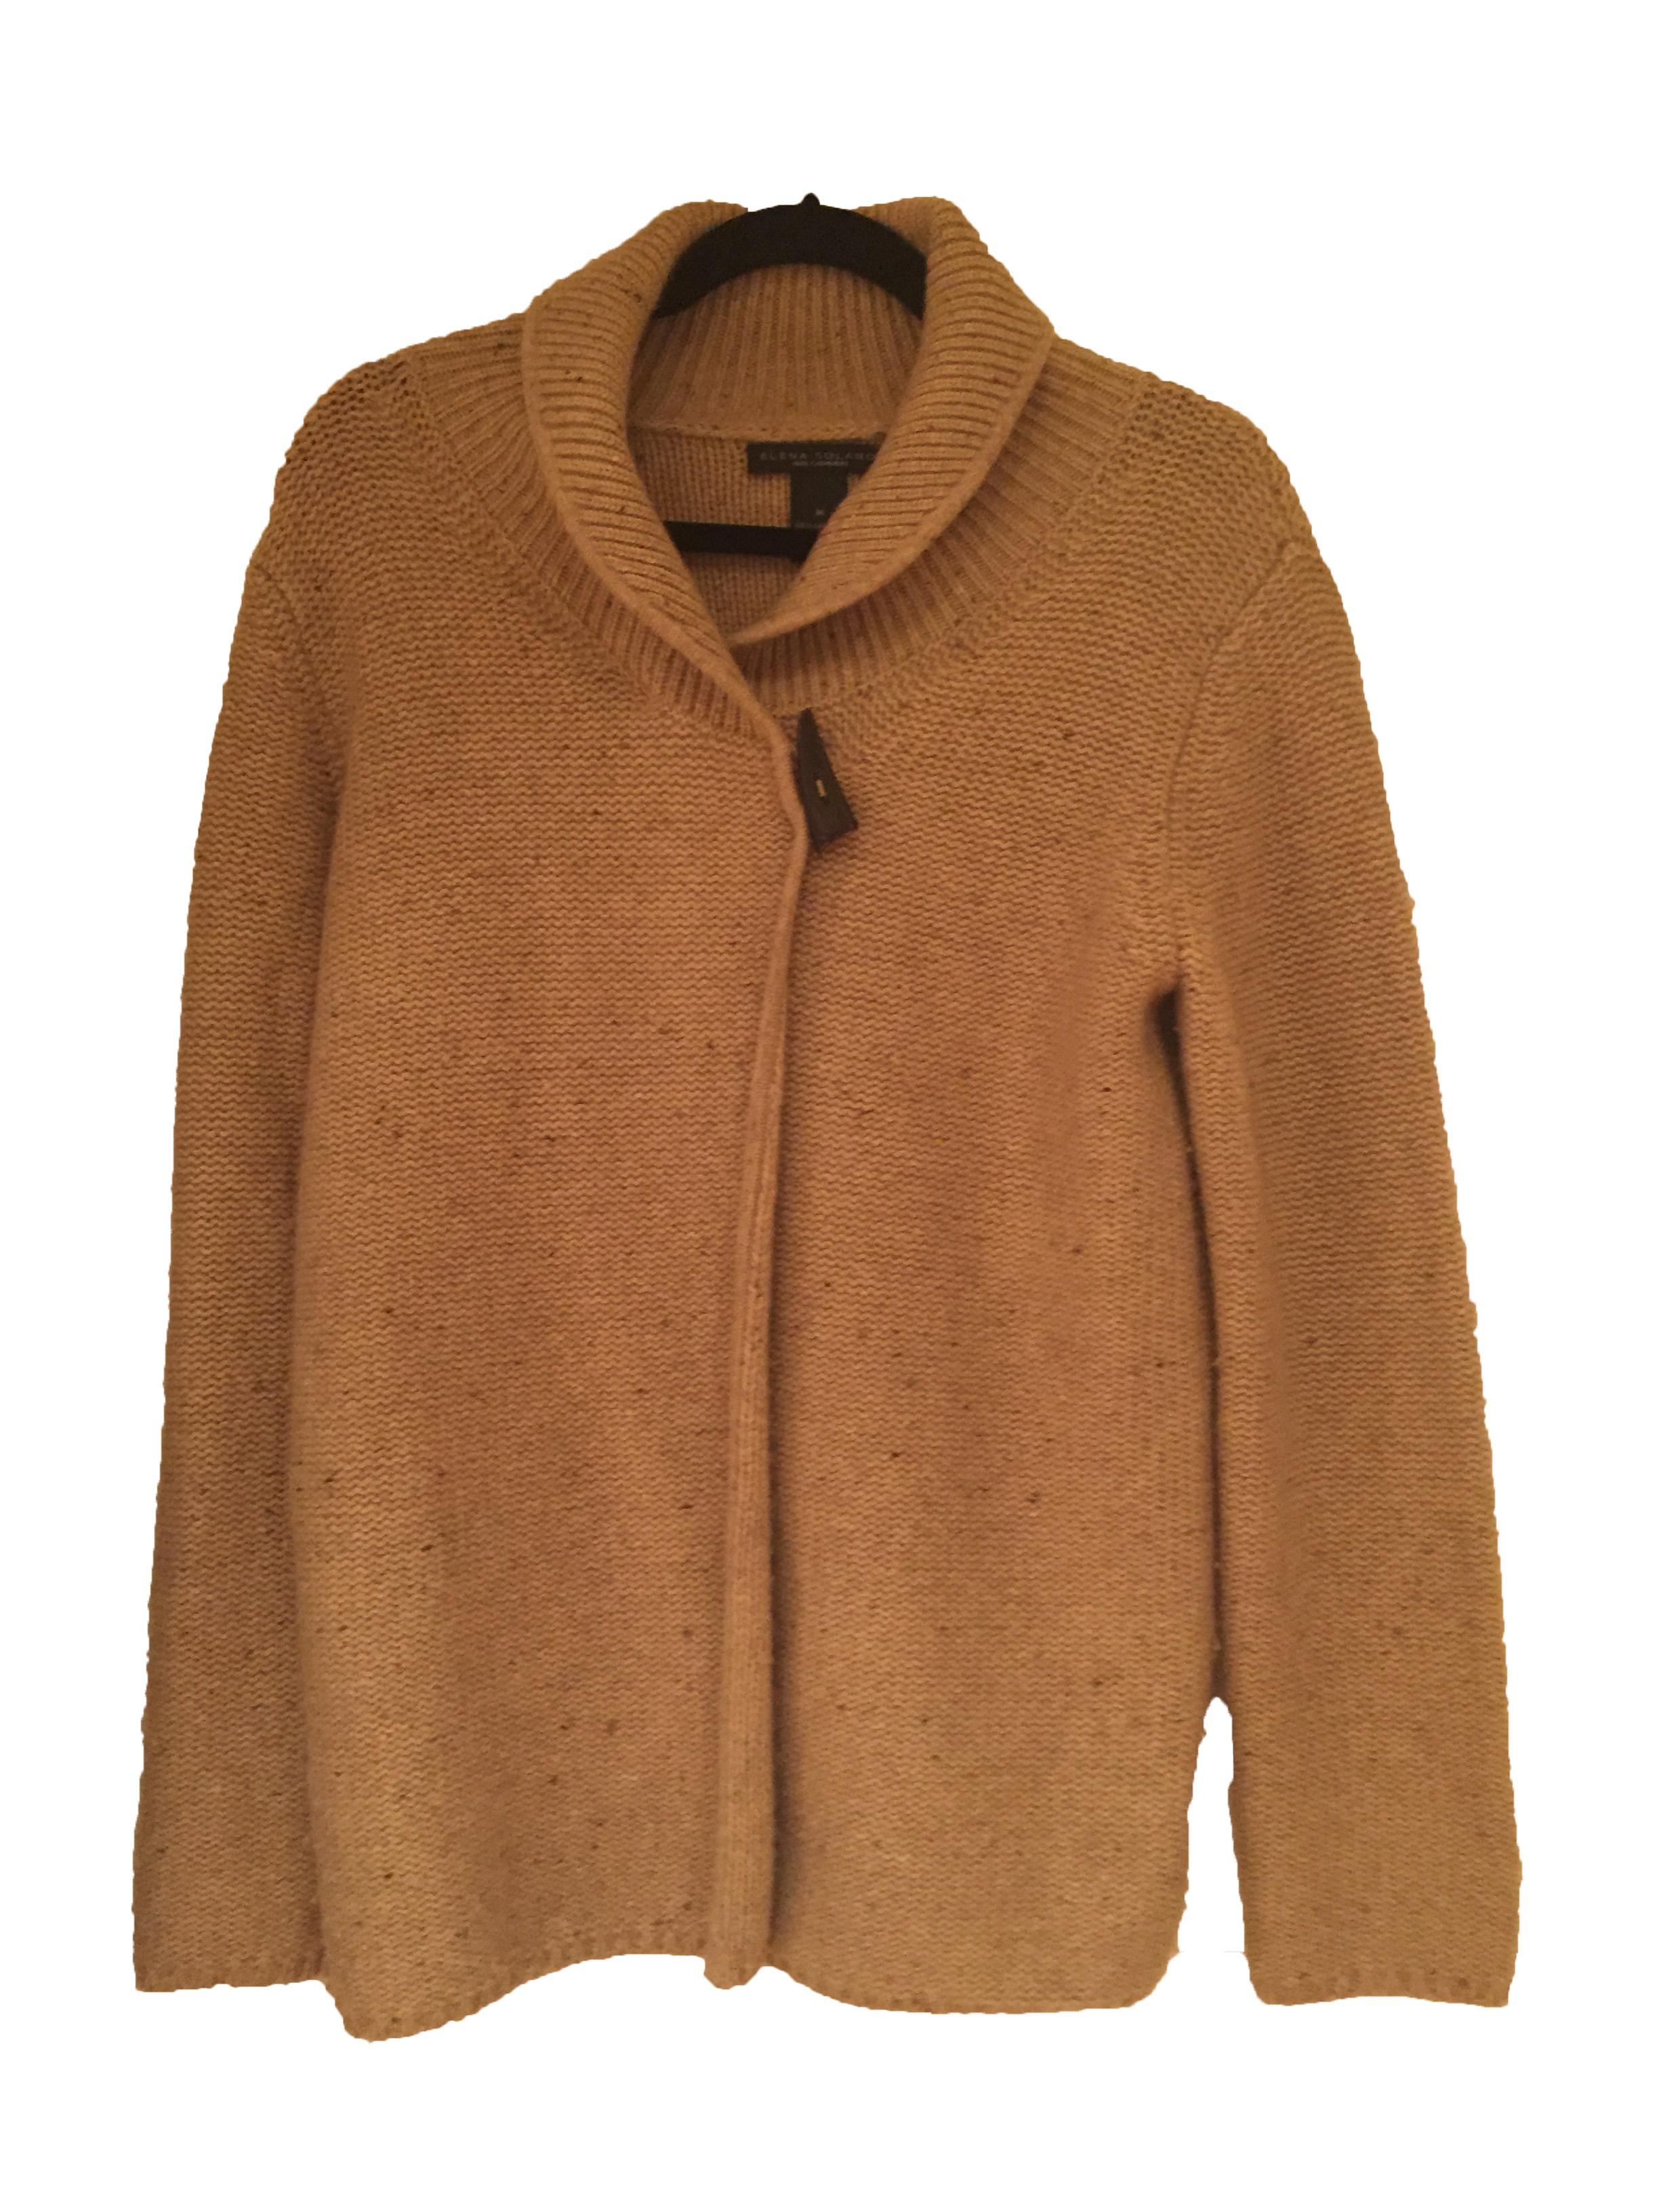 Elena Solano Tan Cashmere Horn Toggle Button Sweater Cardigan Size ...